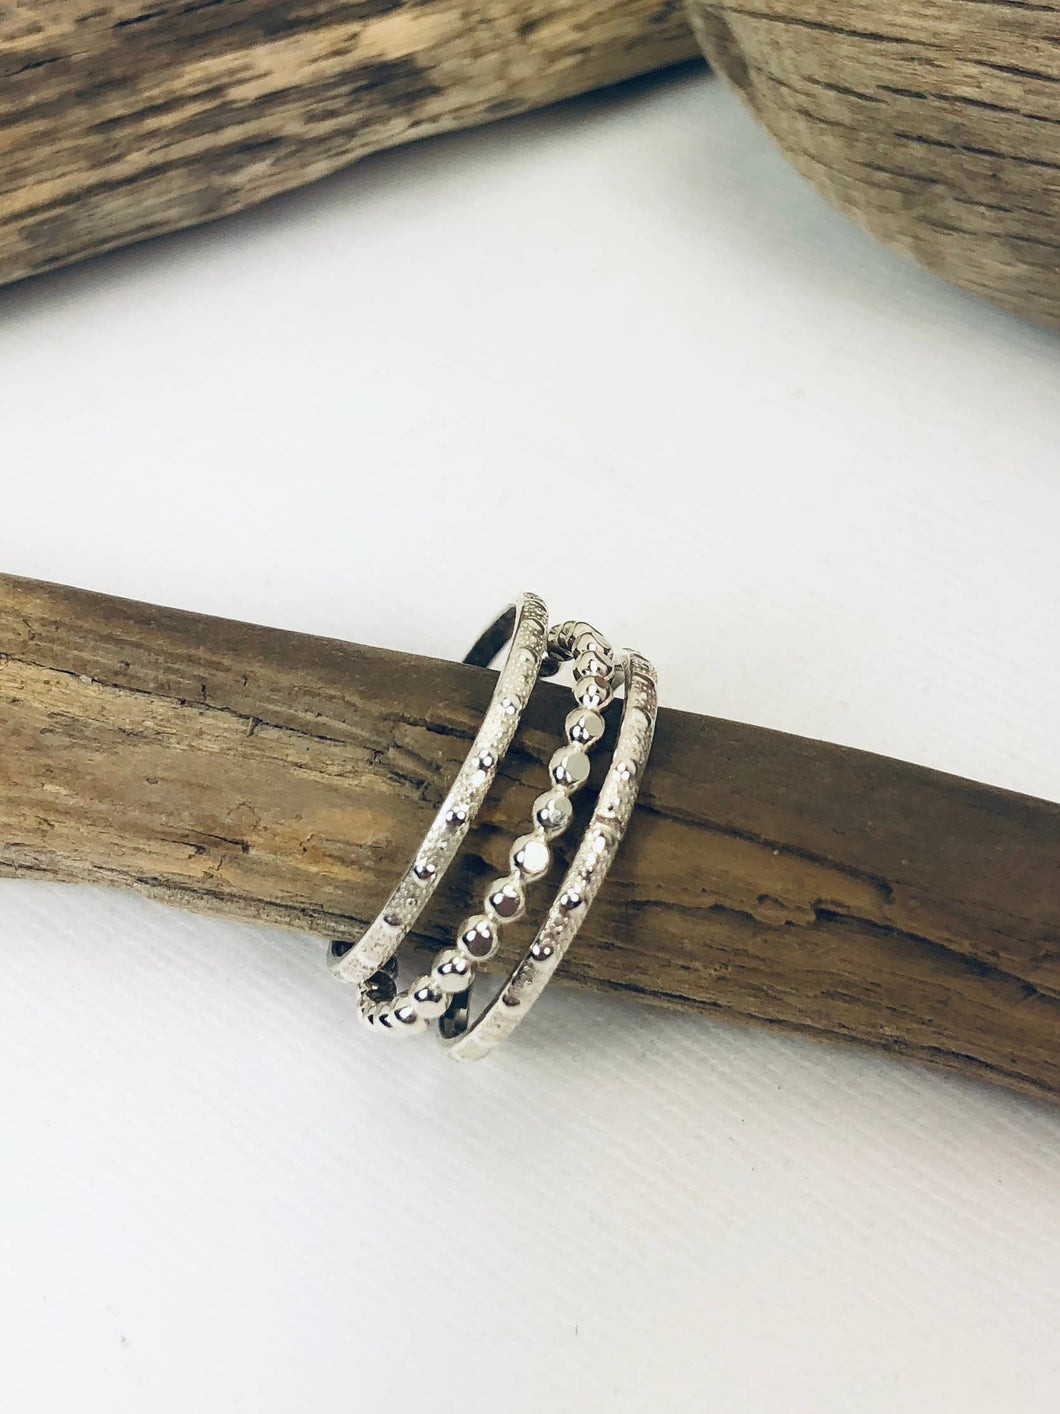 Laura J Designs - Textured Silver Stacking Rings